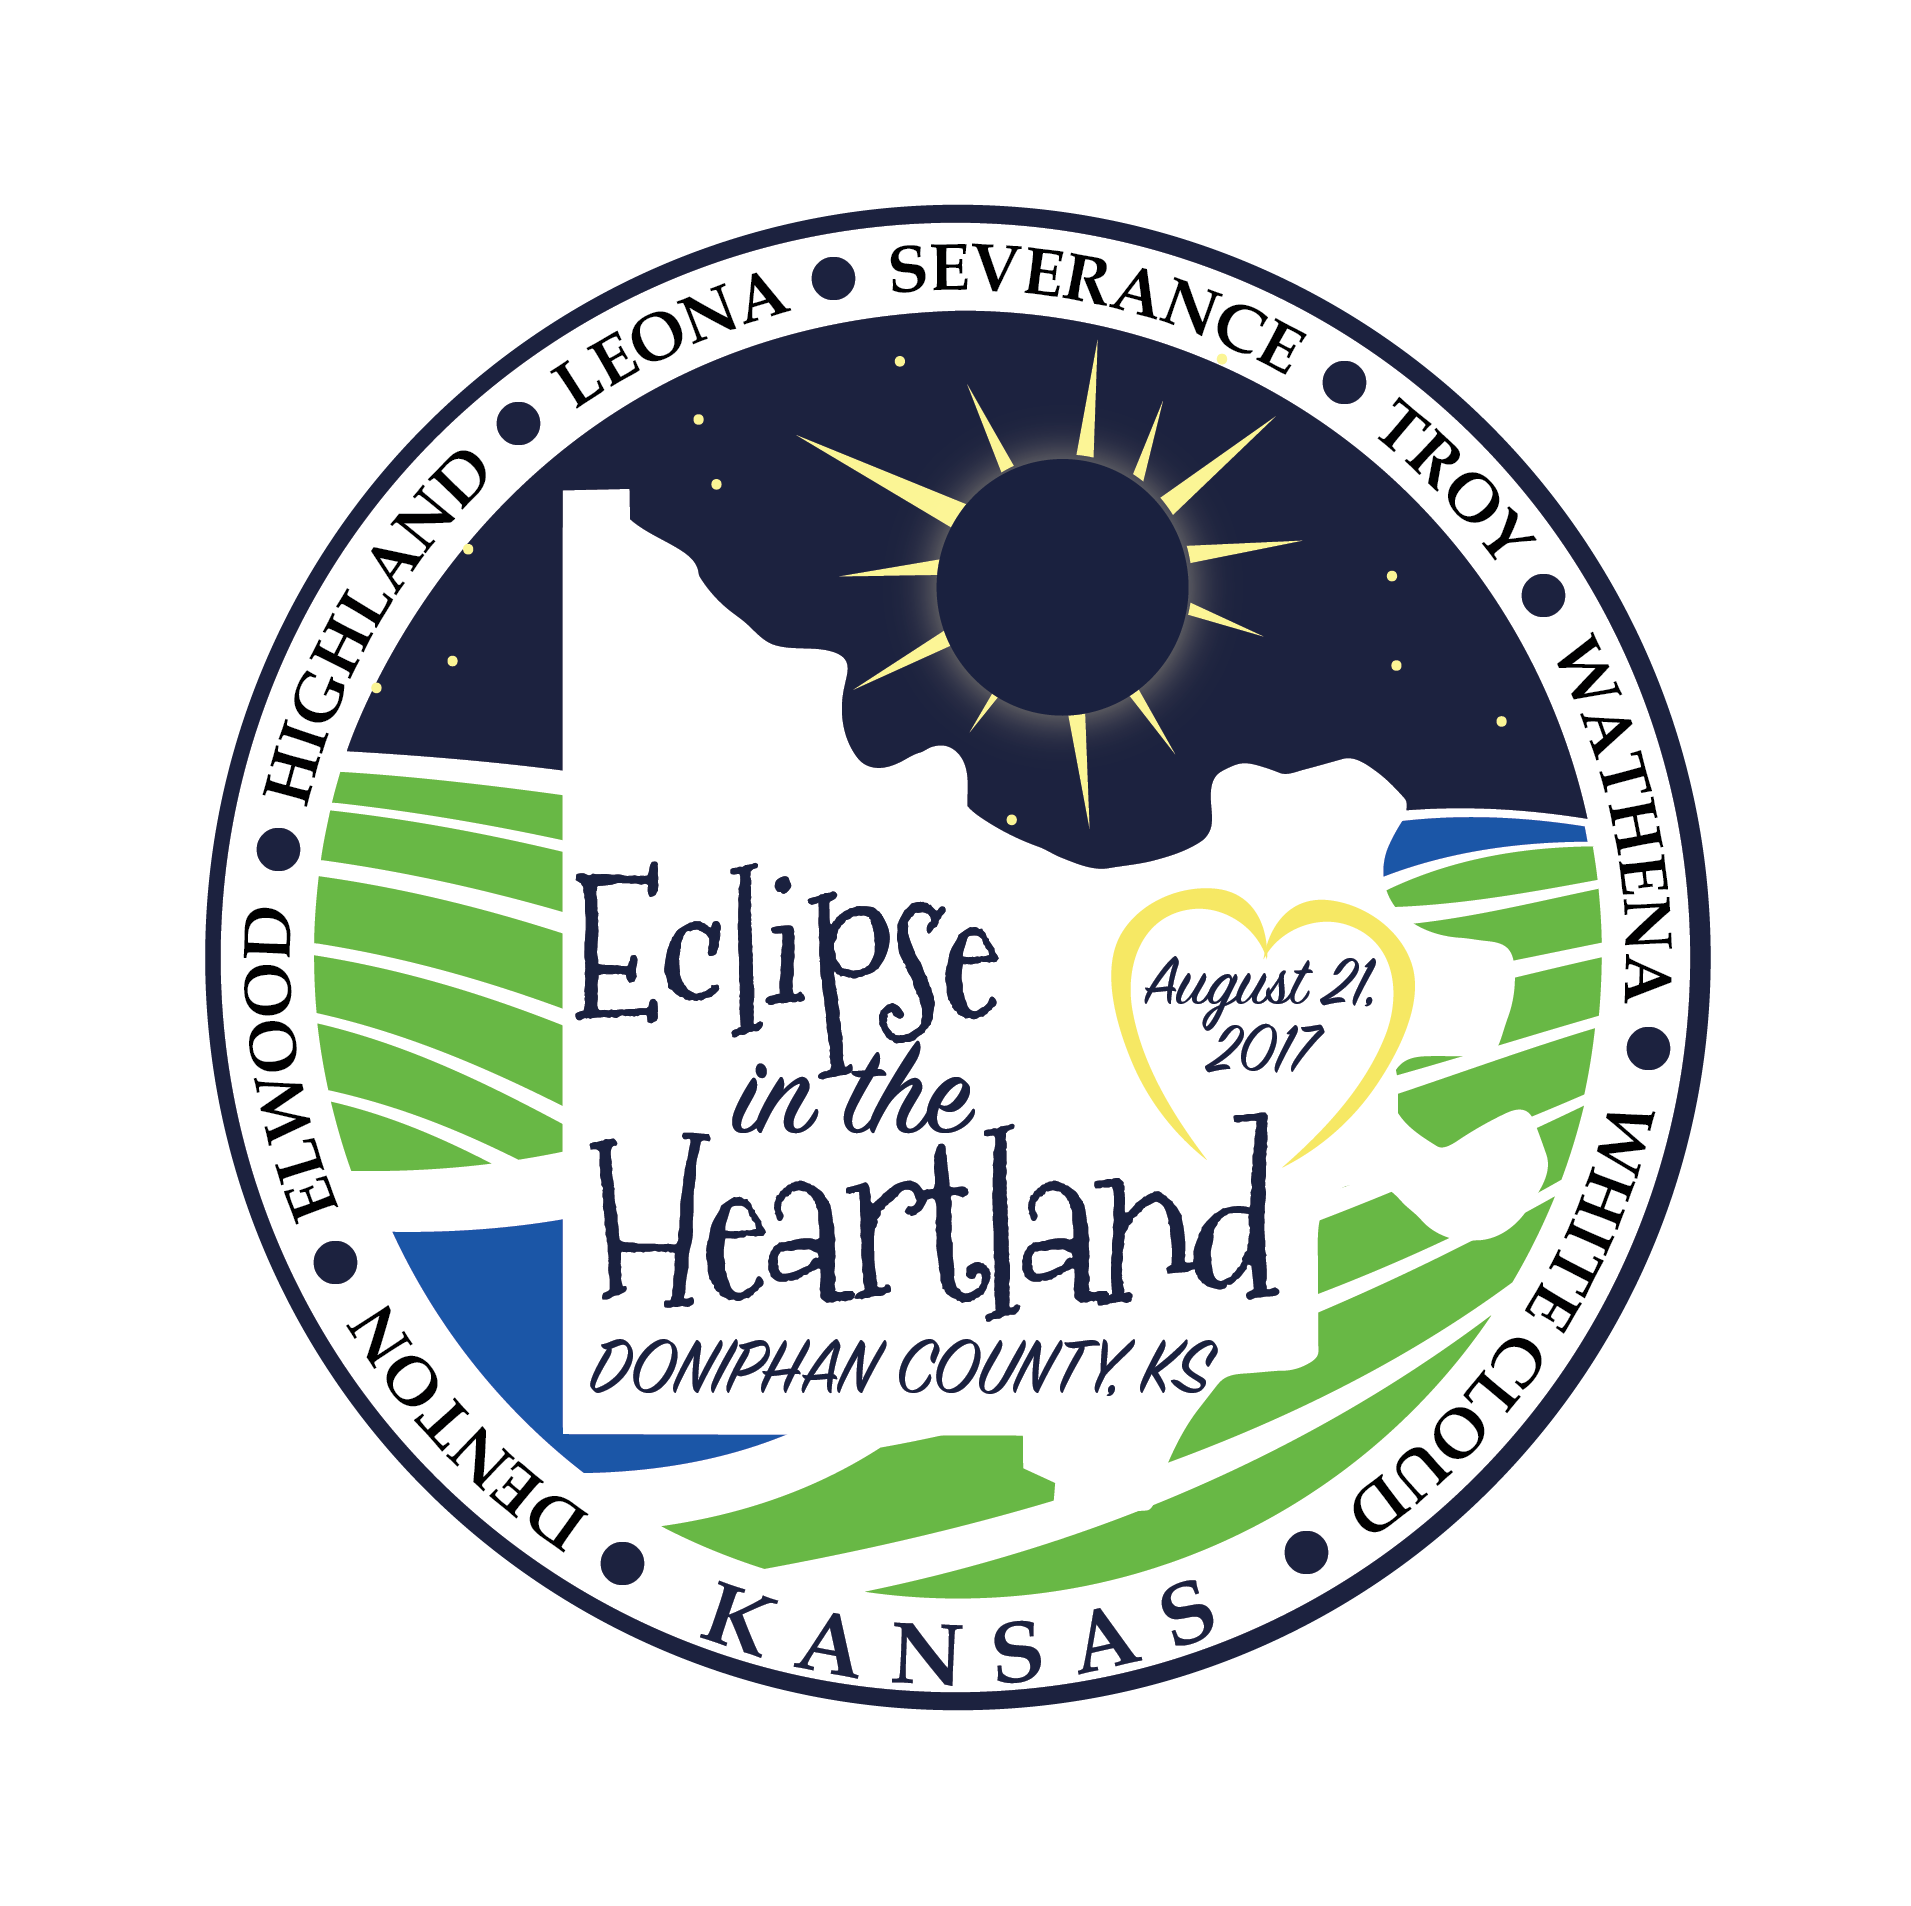 Doniphan County, in extreme northeastern Kansas, is celebrating the total solar eclipse with events and activities on Sunday, August 20 and Monday, August 21 (day of eclipse).